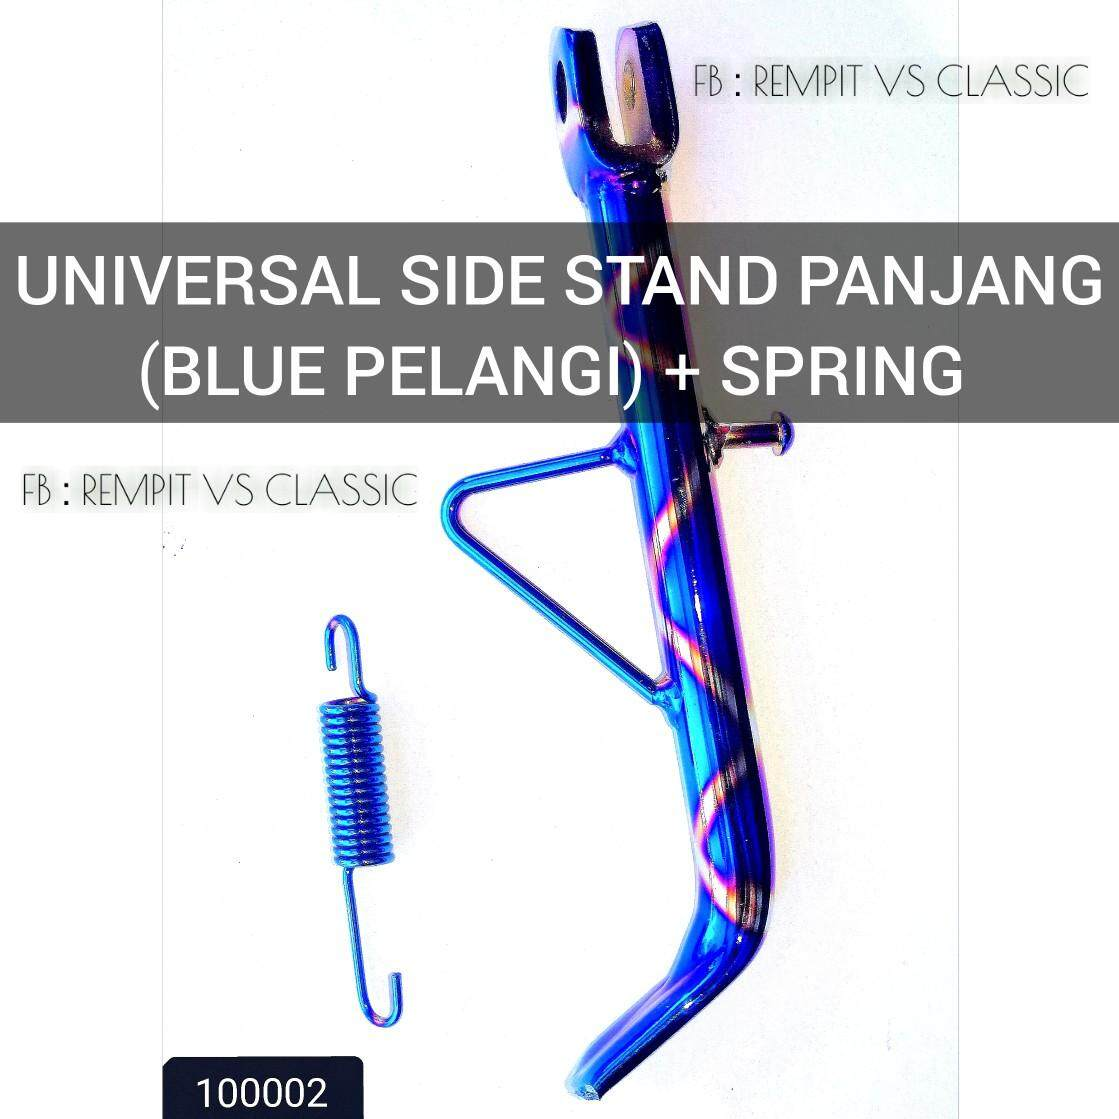 Universal Side Stand Panjang (blue Pelangi) + Spring By Rempit Vs Classic.